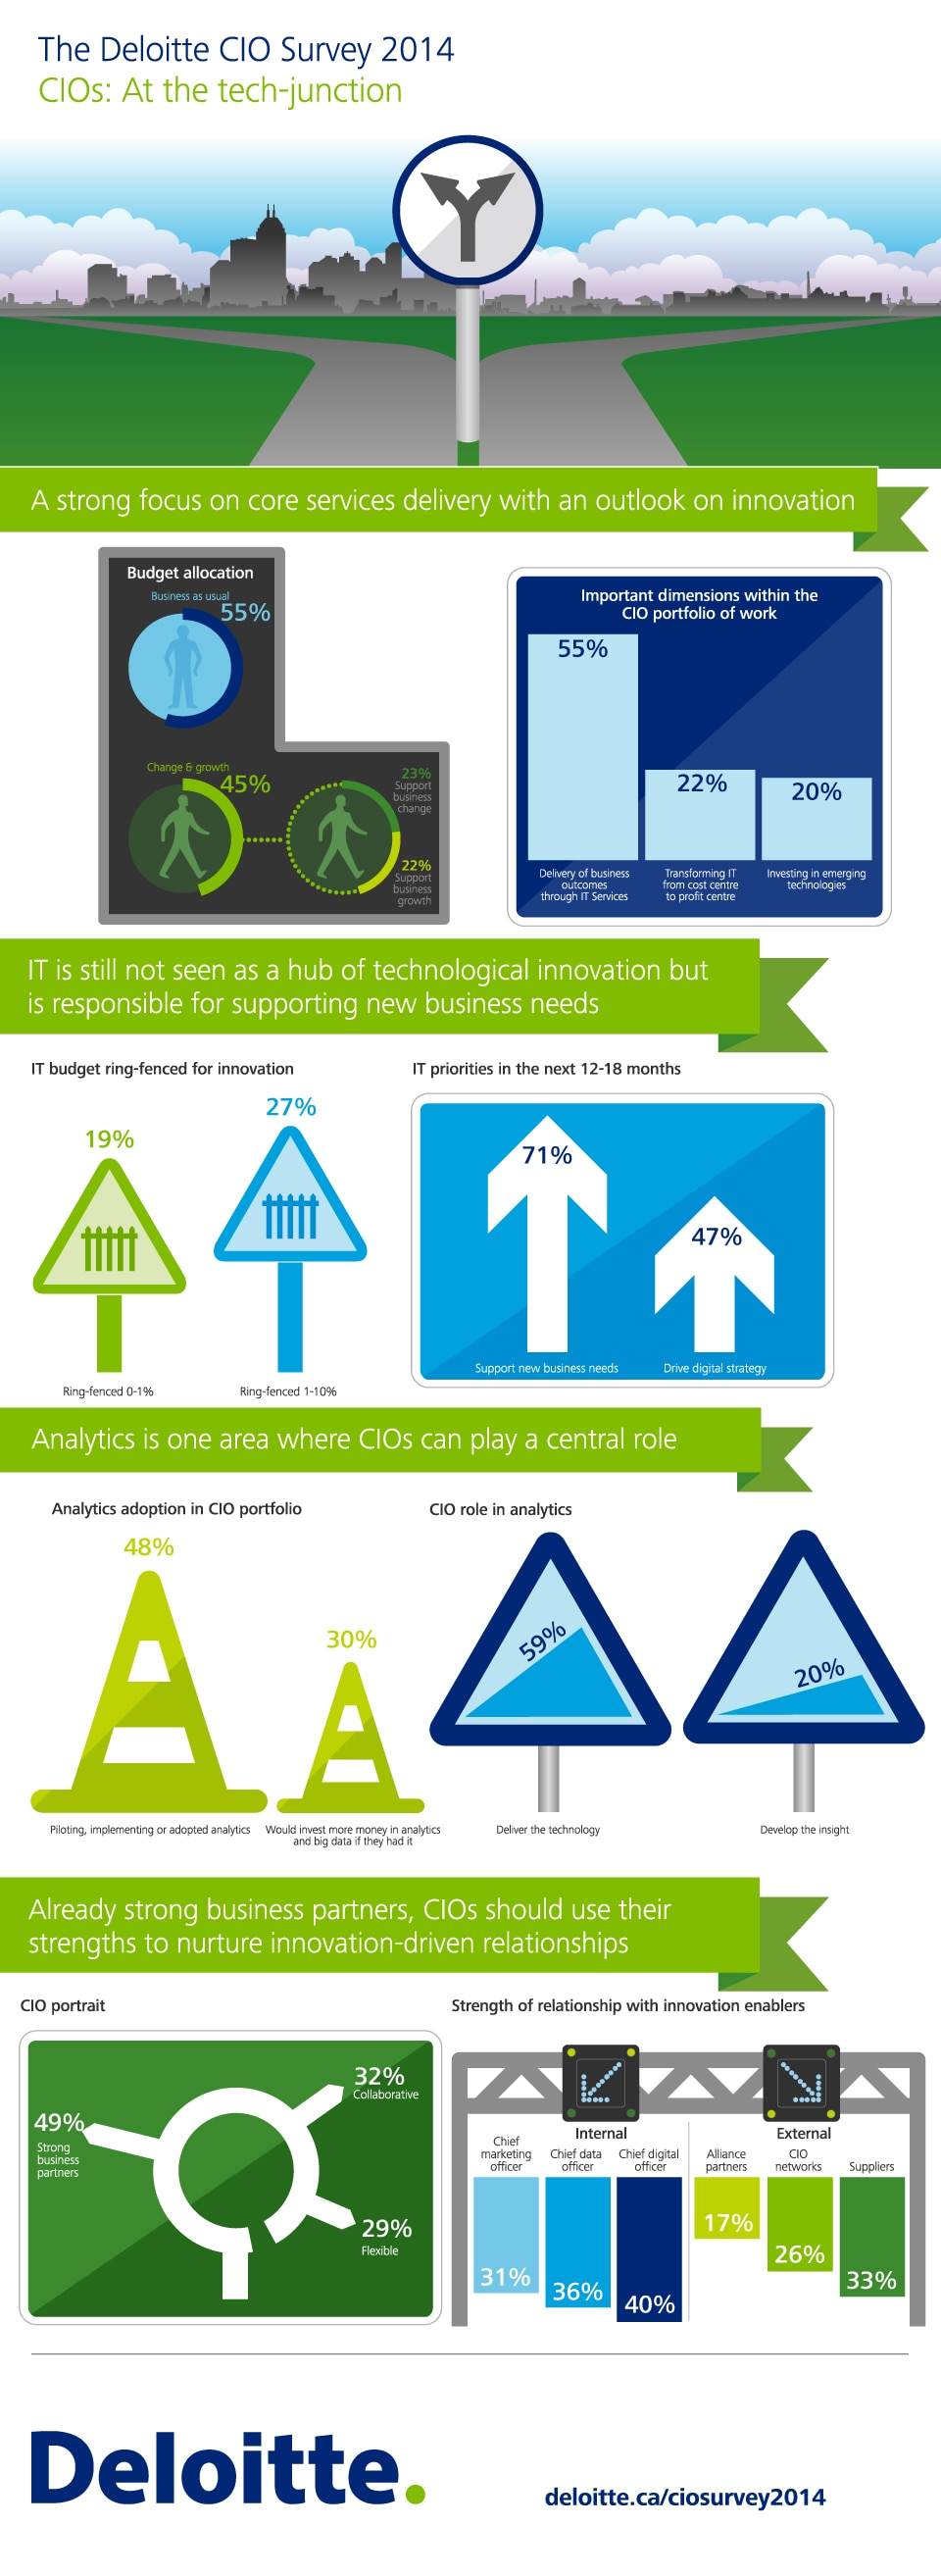 The Deloitte CIO Survey 2014